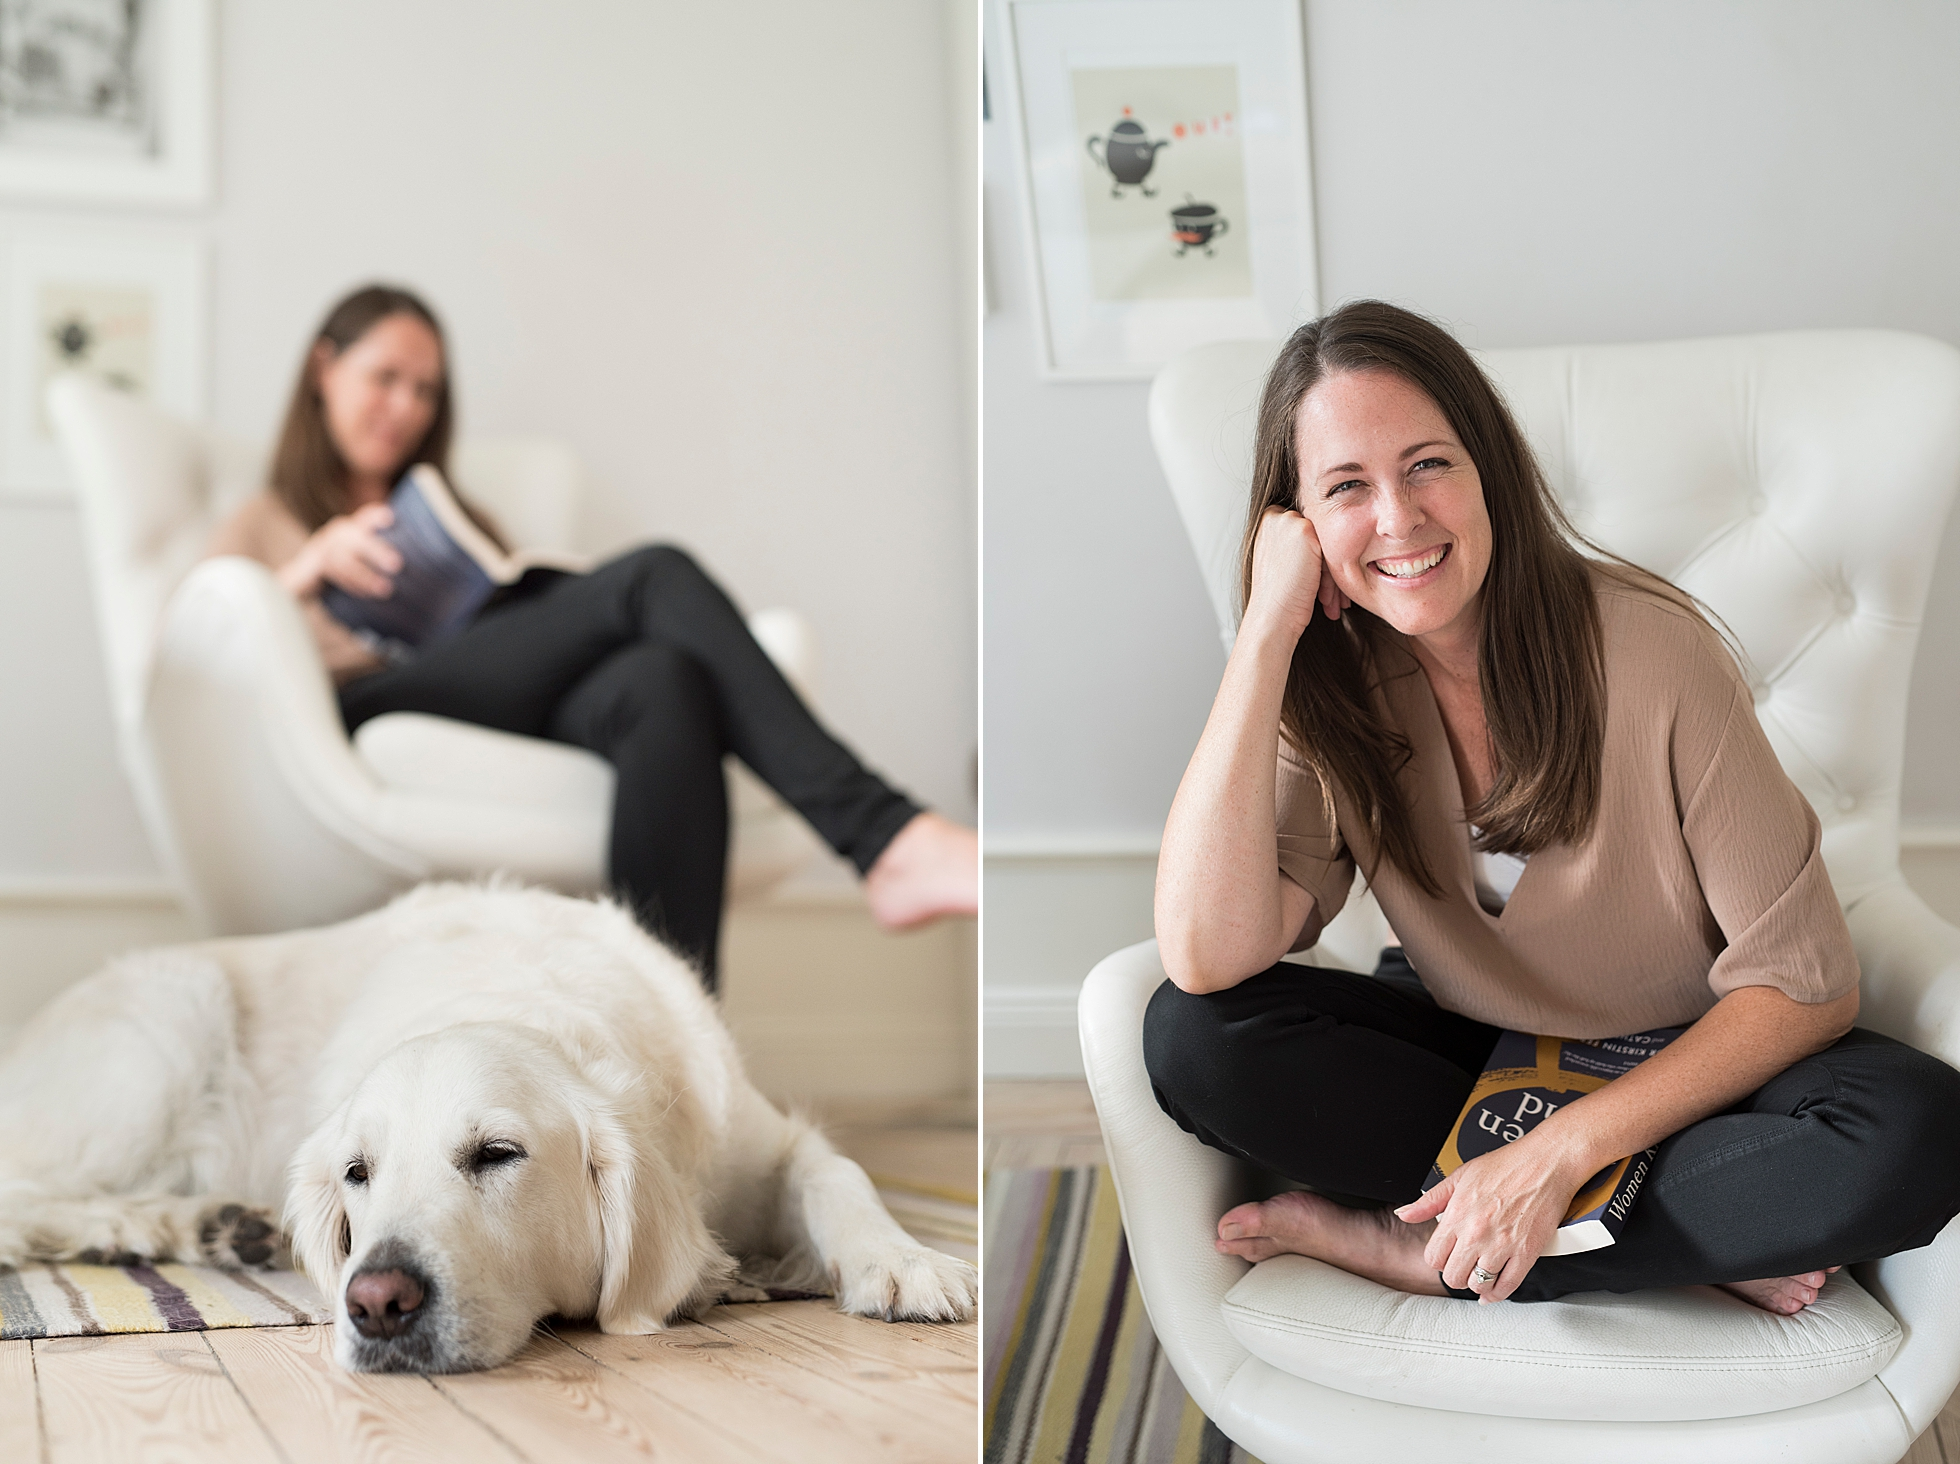 Light and airy brand photos of photographer, Janine Laag and her dog